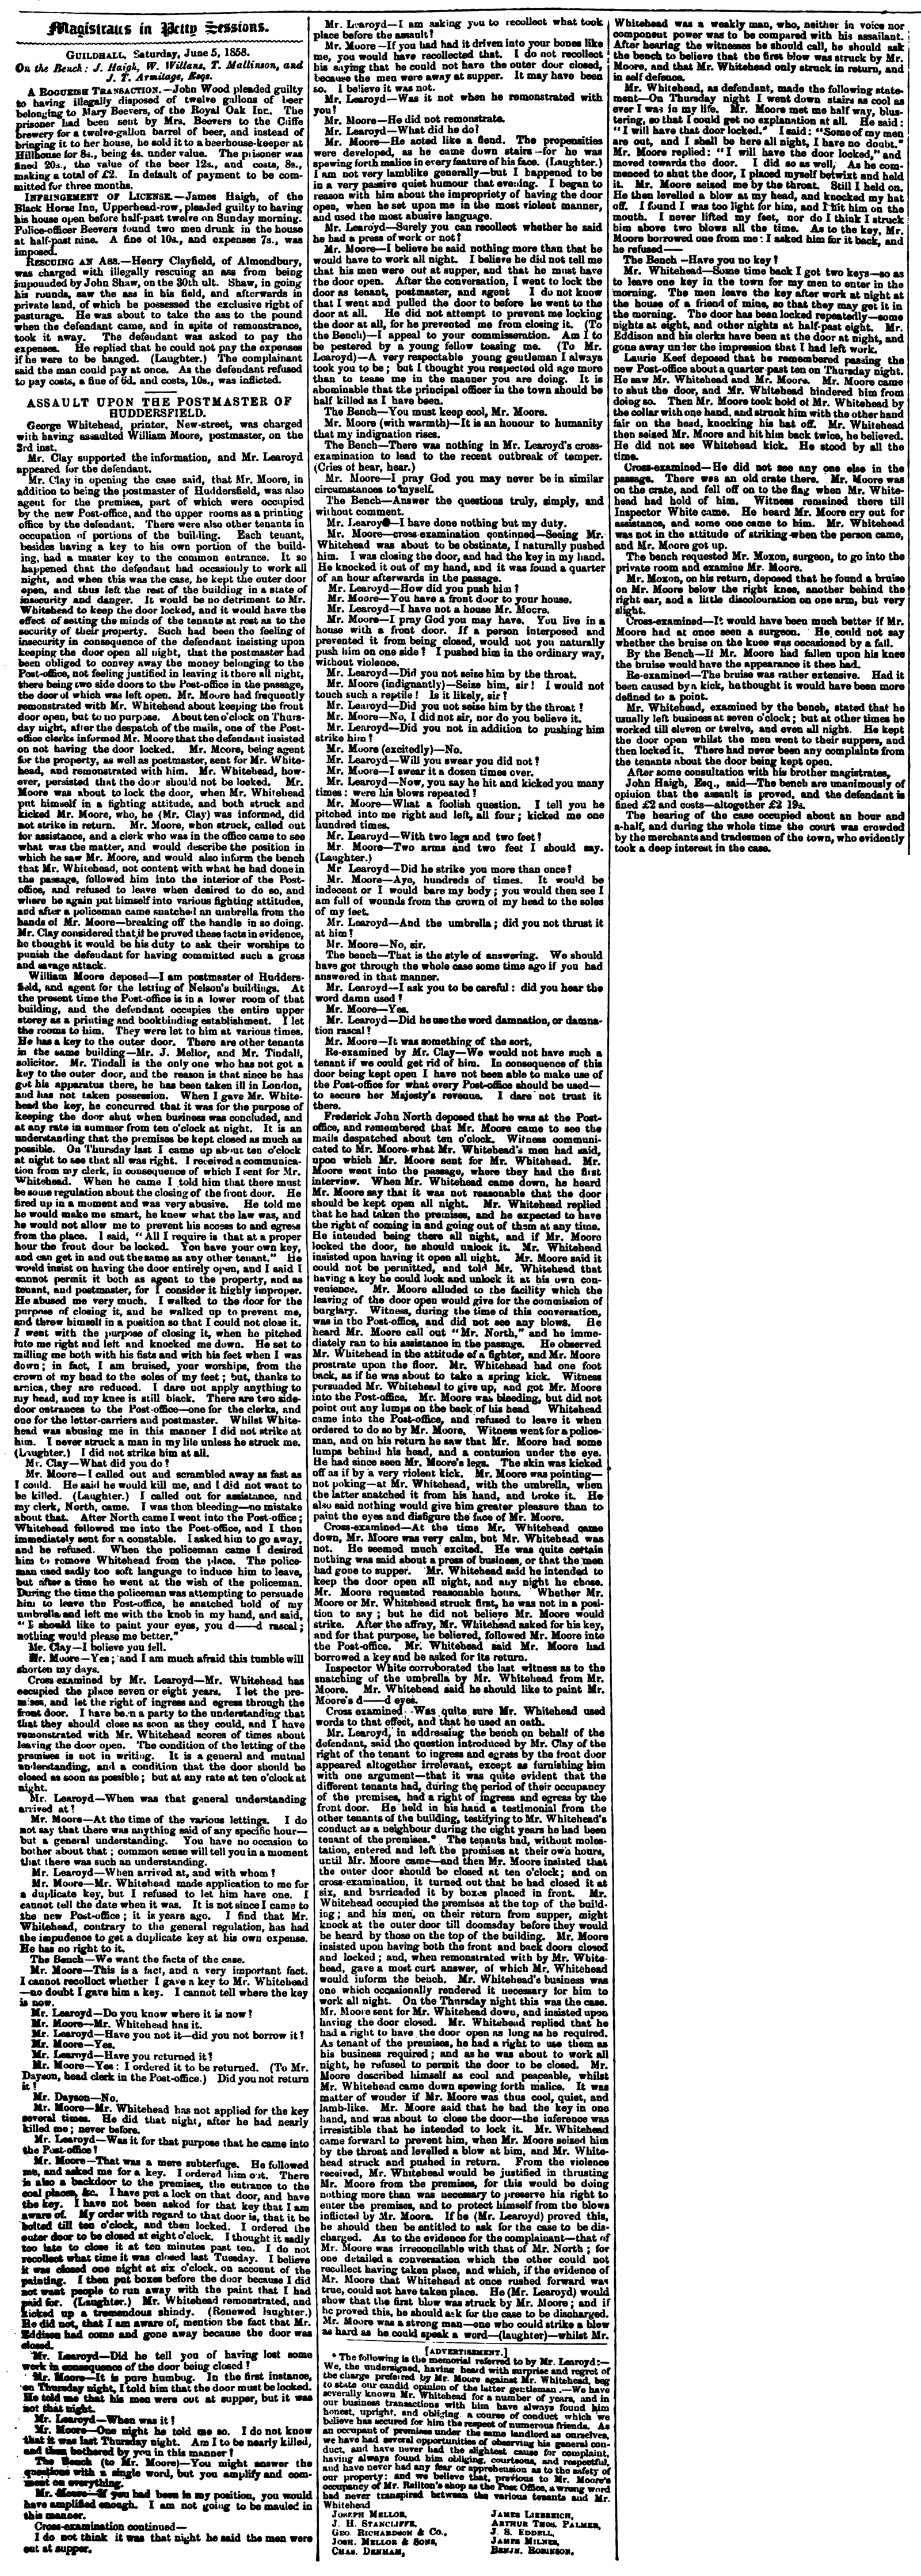 Huddersfield-Chronicle-12-June-1858.png